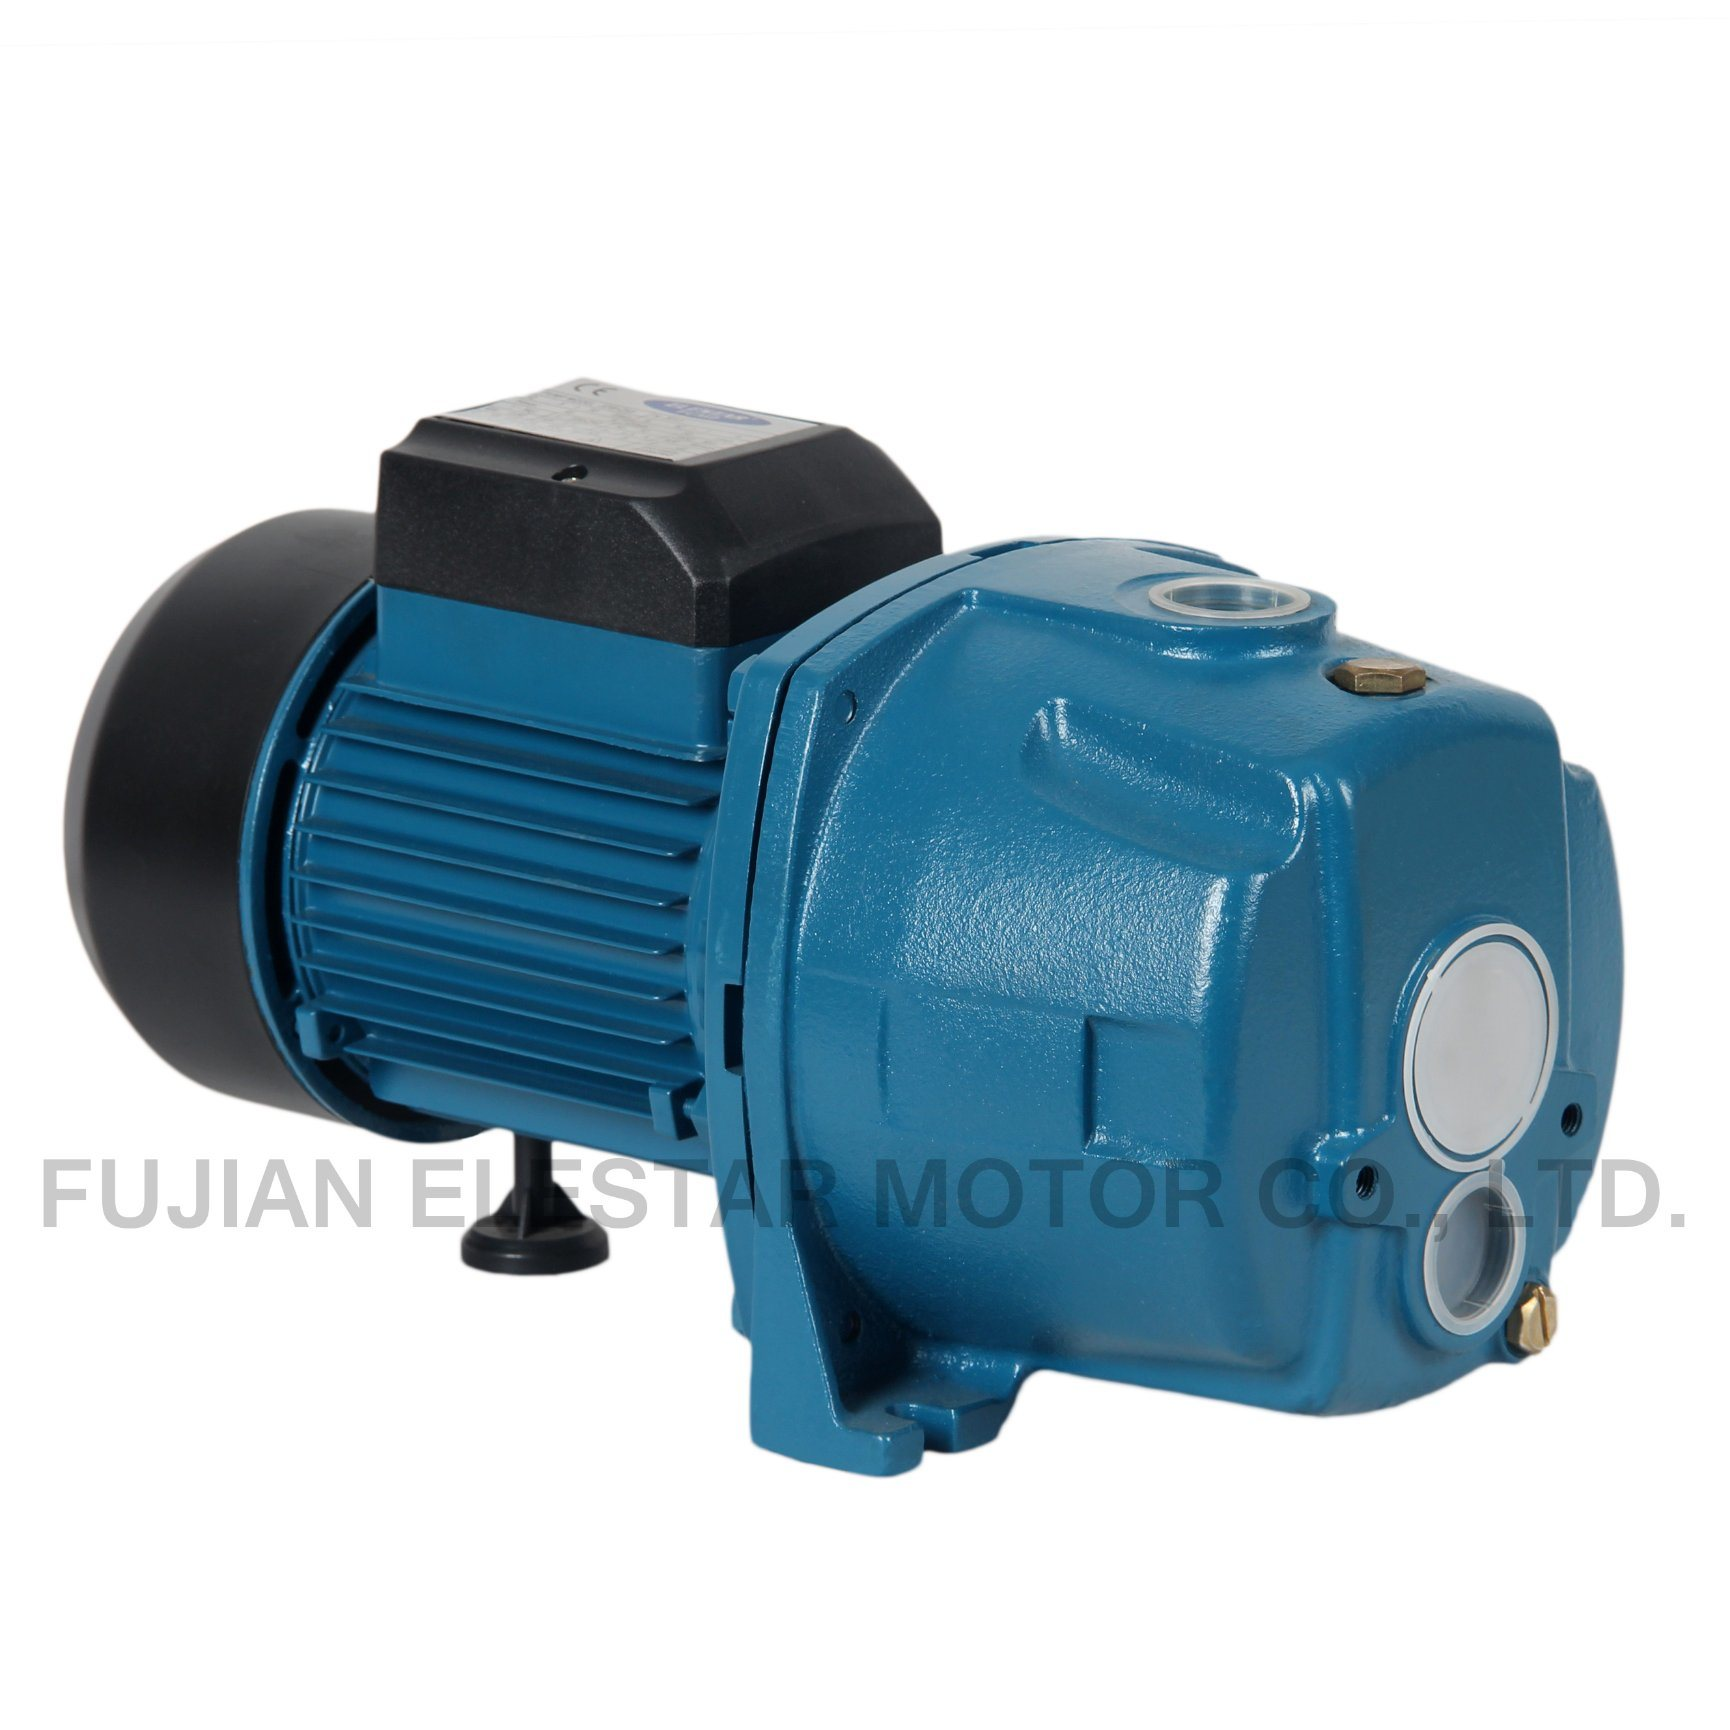 Self-Priming Jet and Centrifugal Electric Water Pump for Deep Wells-Jdw Series